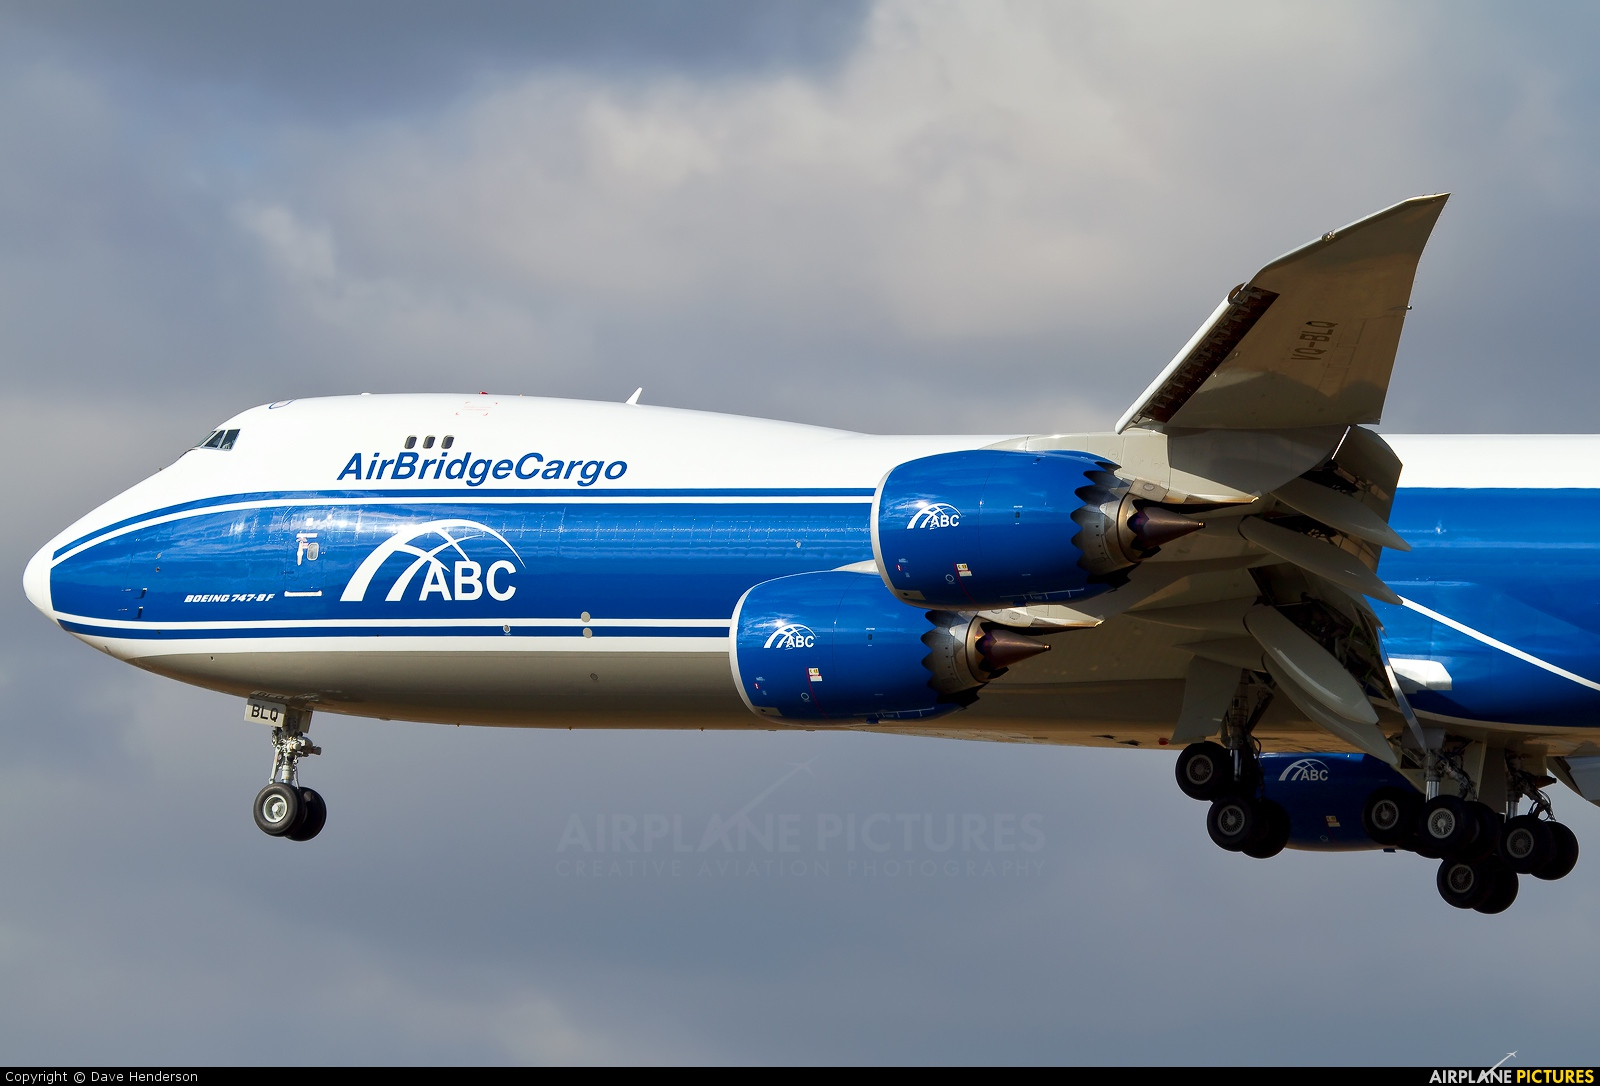 Air Bridge Cargo VQ-BLQ aircraft at Frankfurt